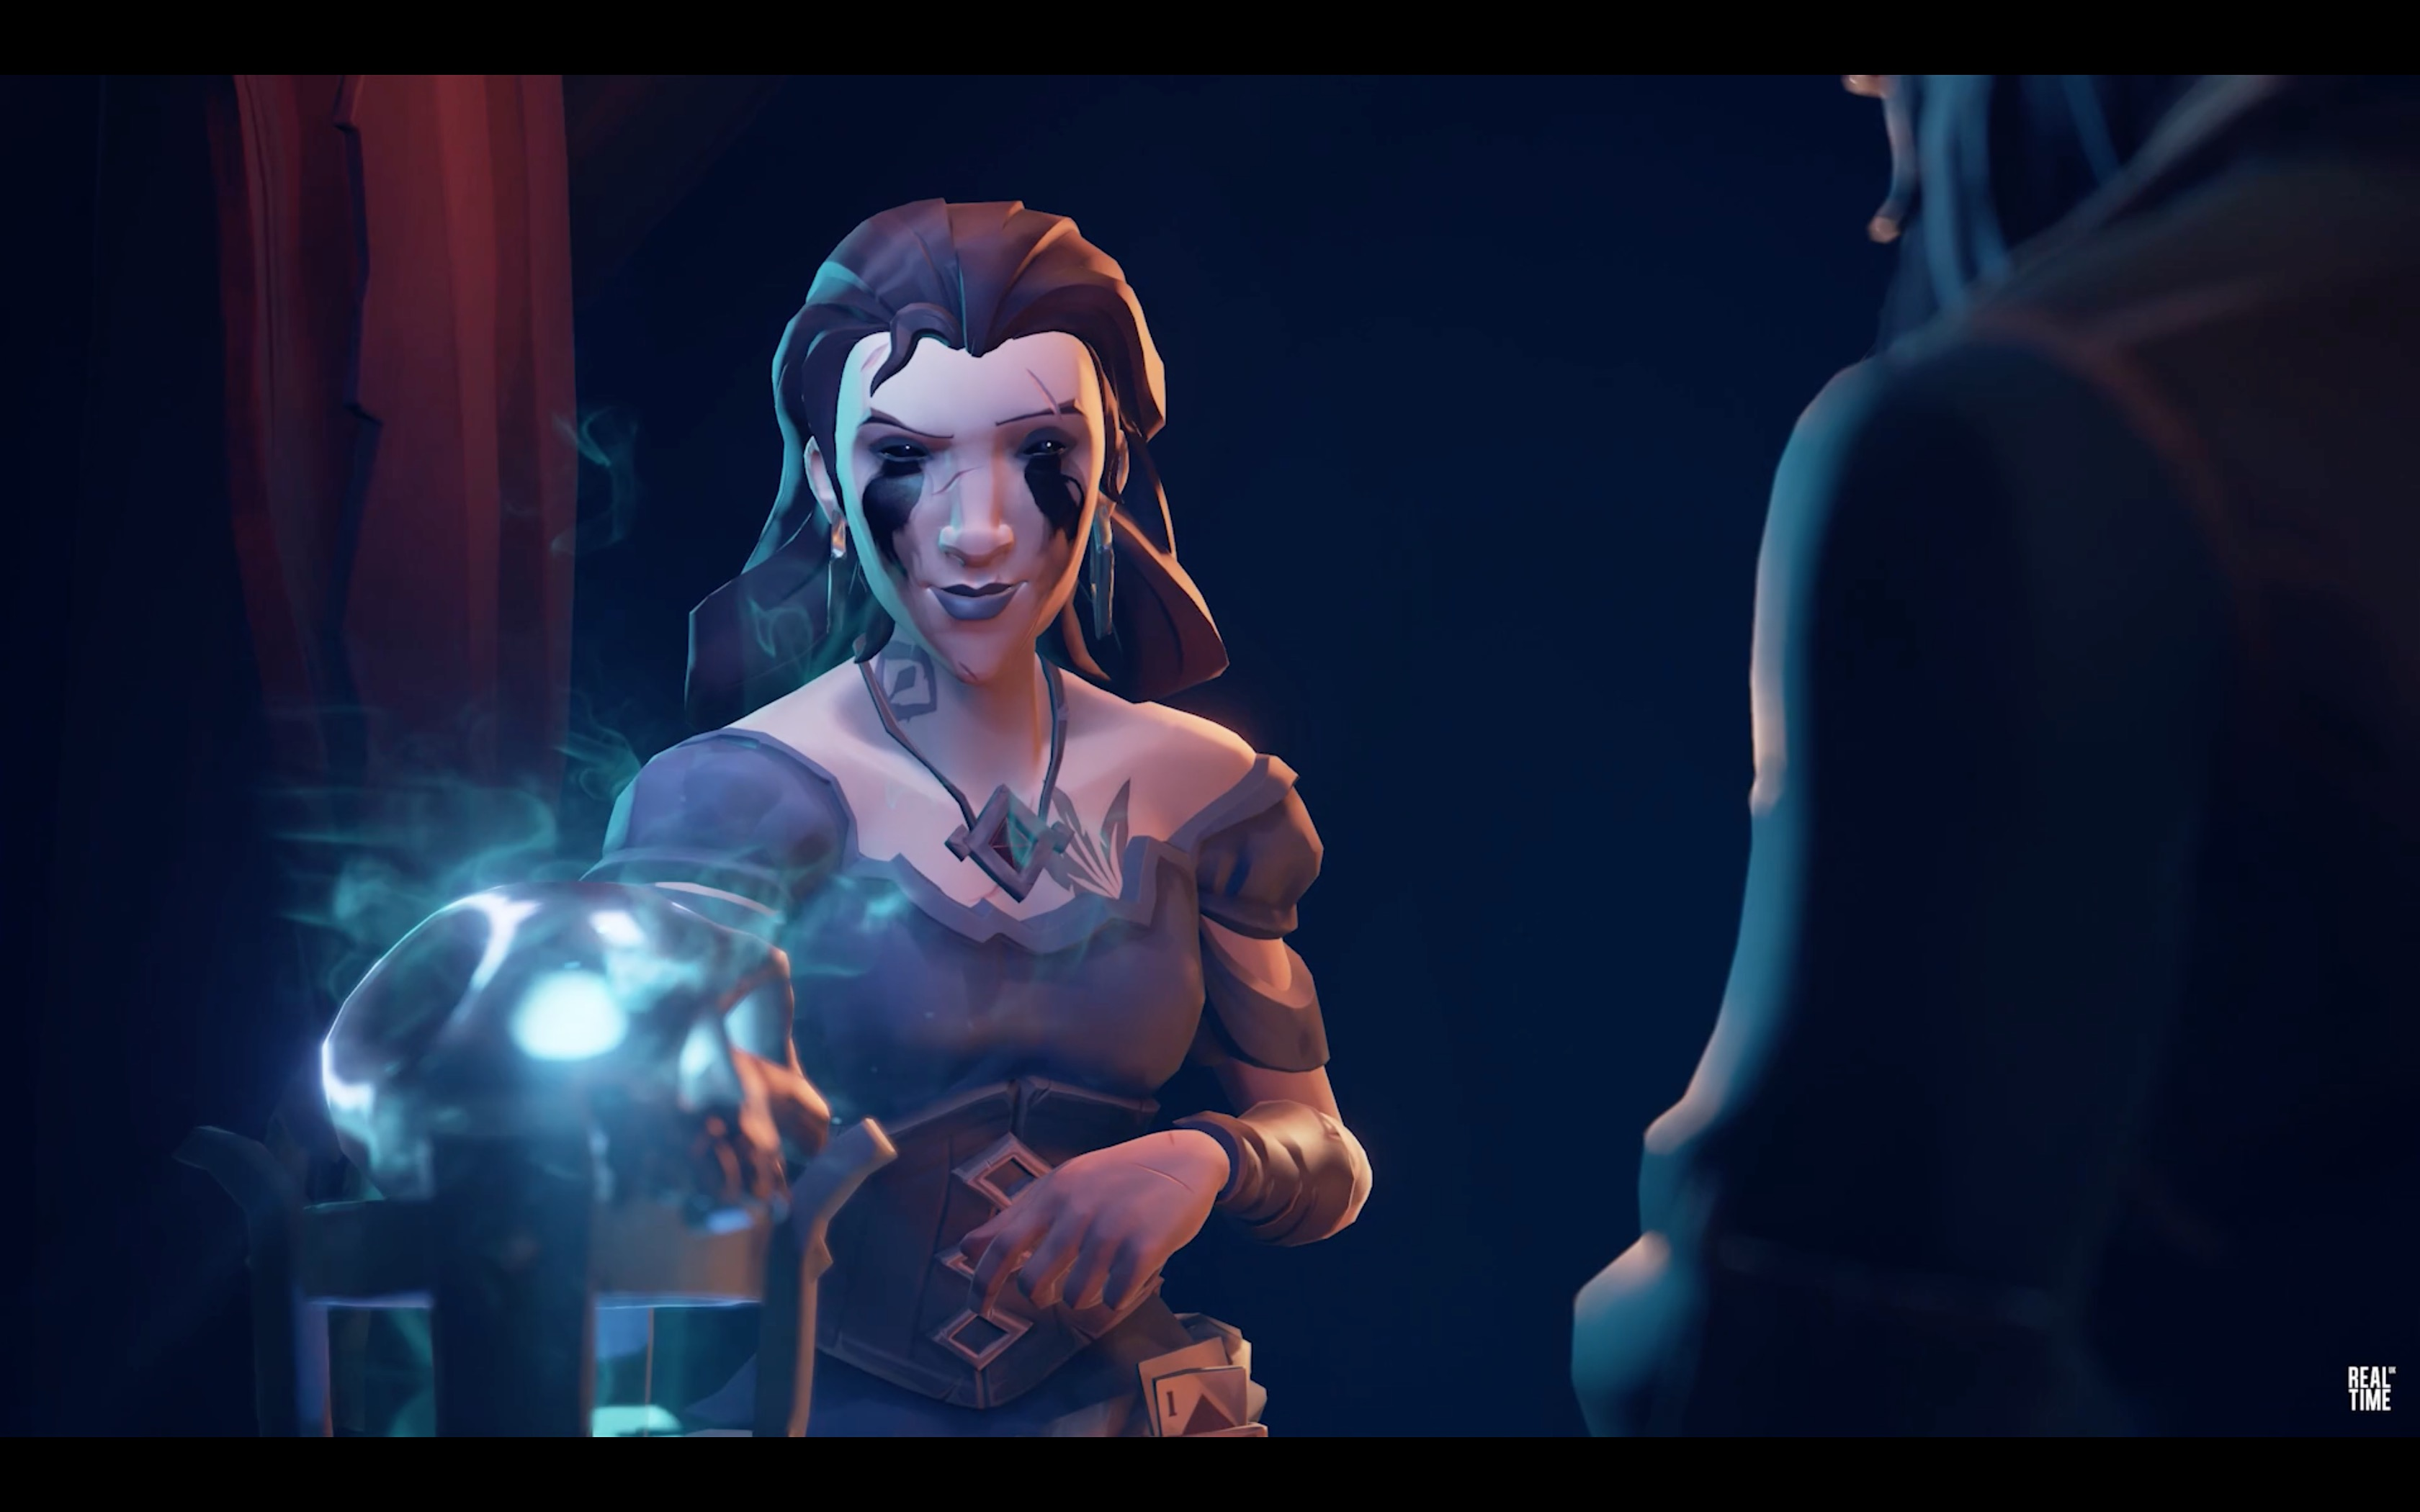 Sea of Thieves: Cursed Sails Cinematic